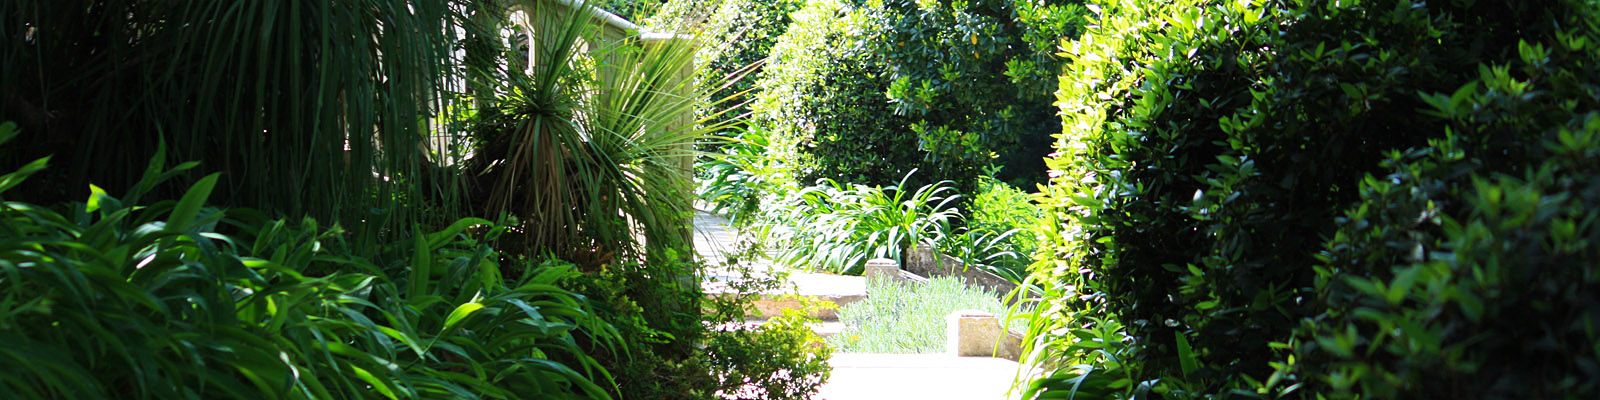 Green Parrot Gardens | Blog | Garden Investments